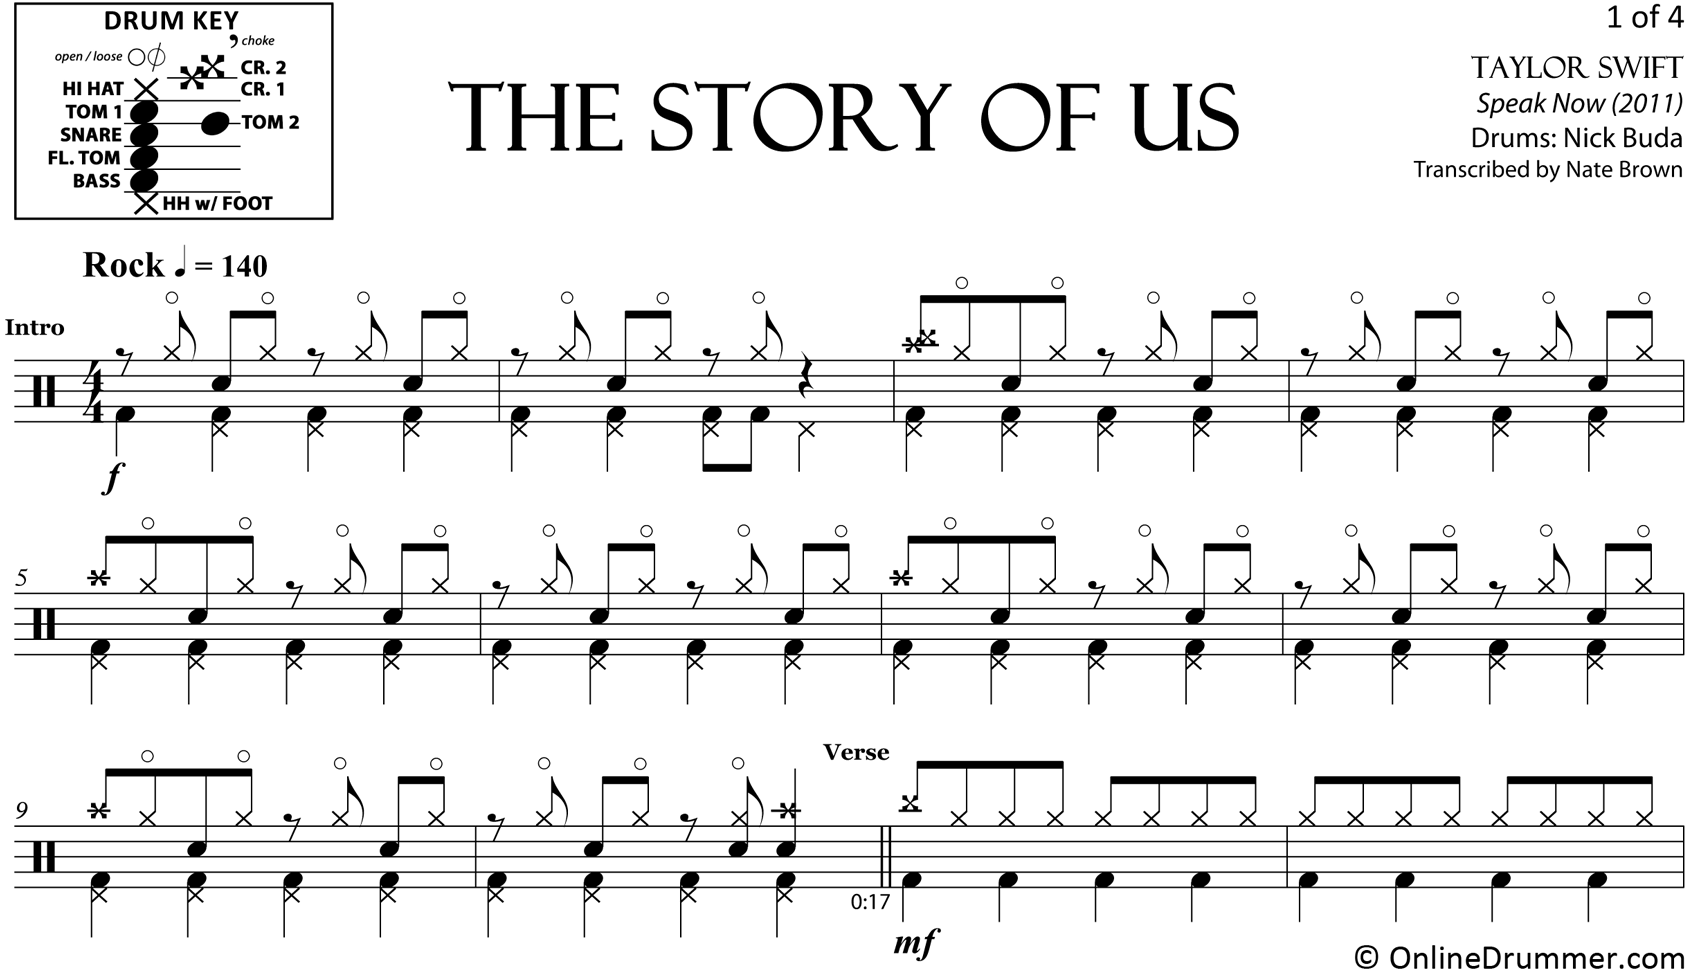 The Story Of Us - Taylor Swift - Drum Sheet Music